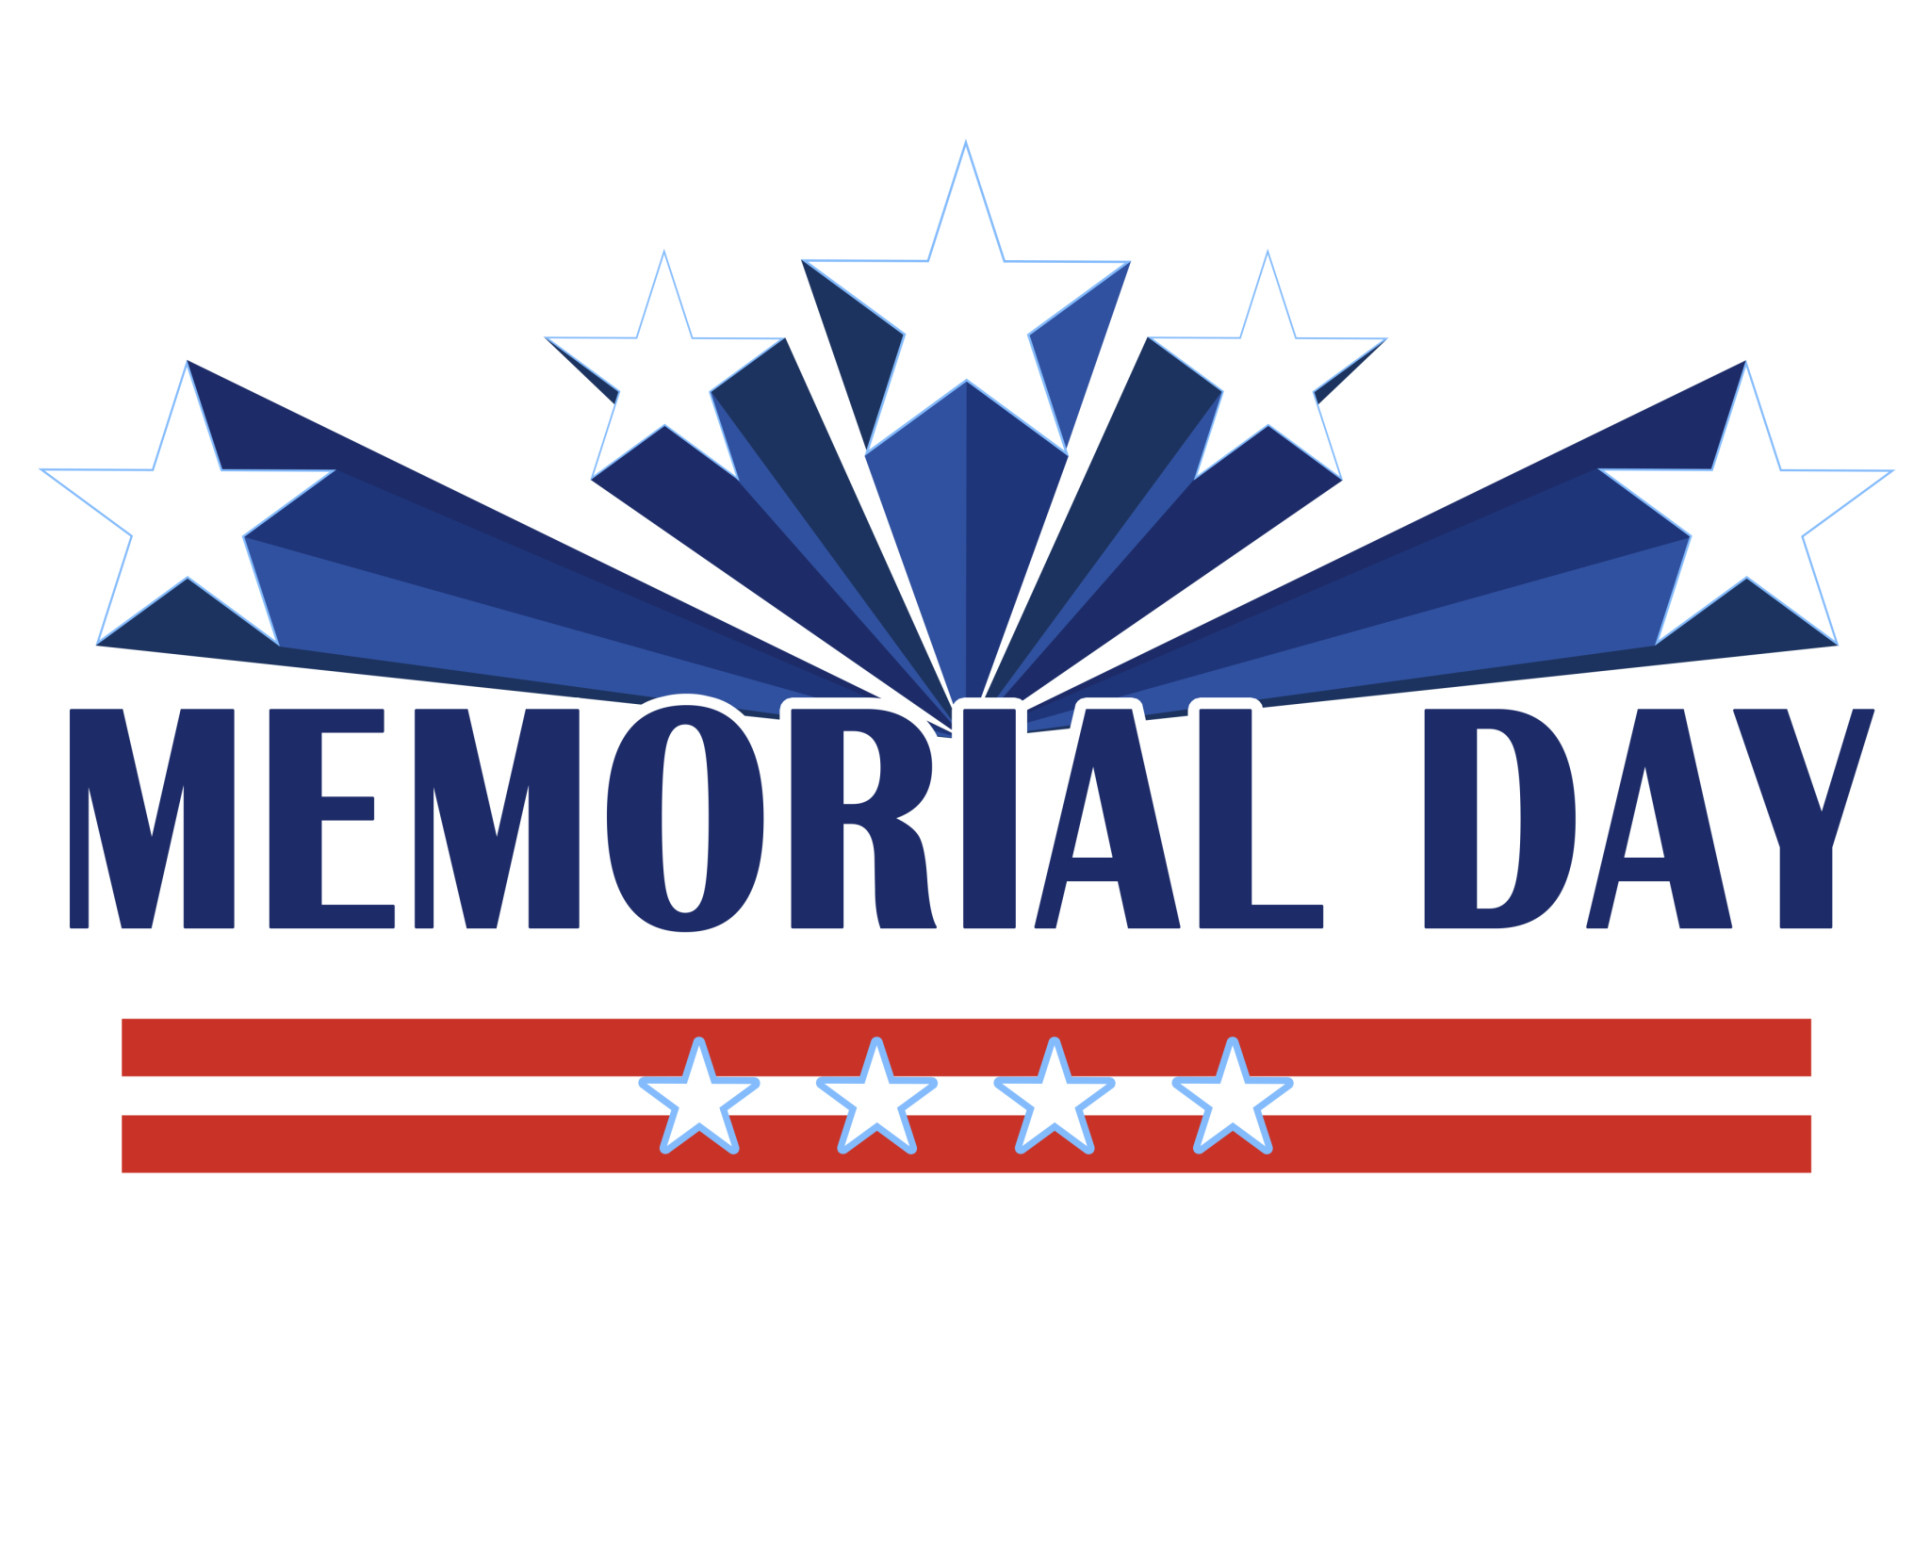 """memorial day Memorial day thank you quotes & messages for veterans memorial day quotes thank you – """"doing something for someone without even thinking of their own life is the best ever done in the world"""" special when it comes to sacrificing their life and that's too for the nation, it's the greatest ever done."""